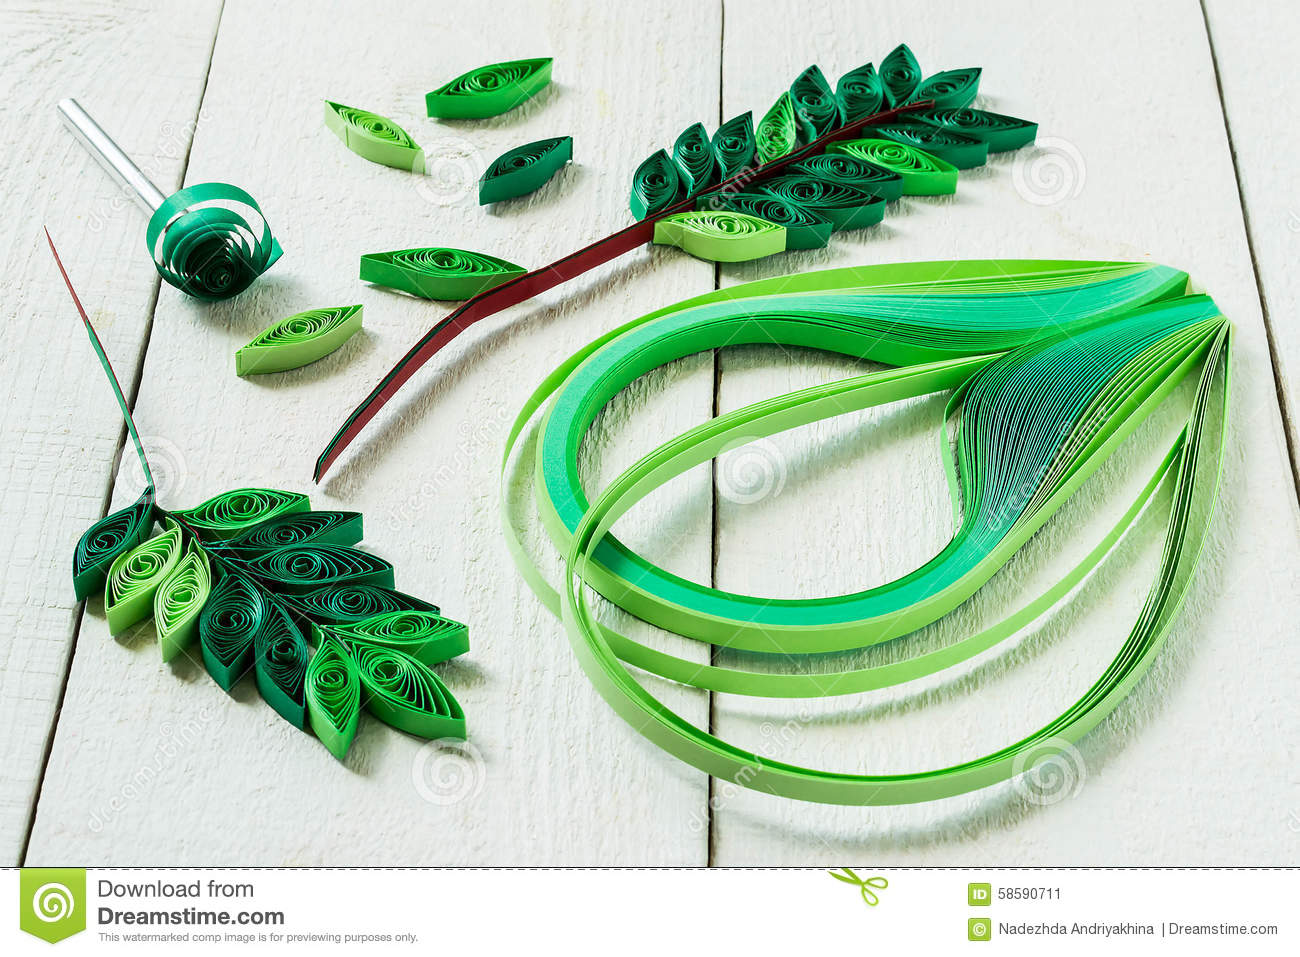 Design elements in the technique of quilling leaves rowan stock photo image 58590711 - How to use creative lighting techniques as a design element ...